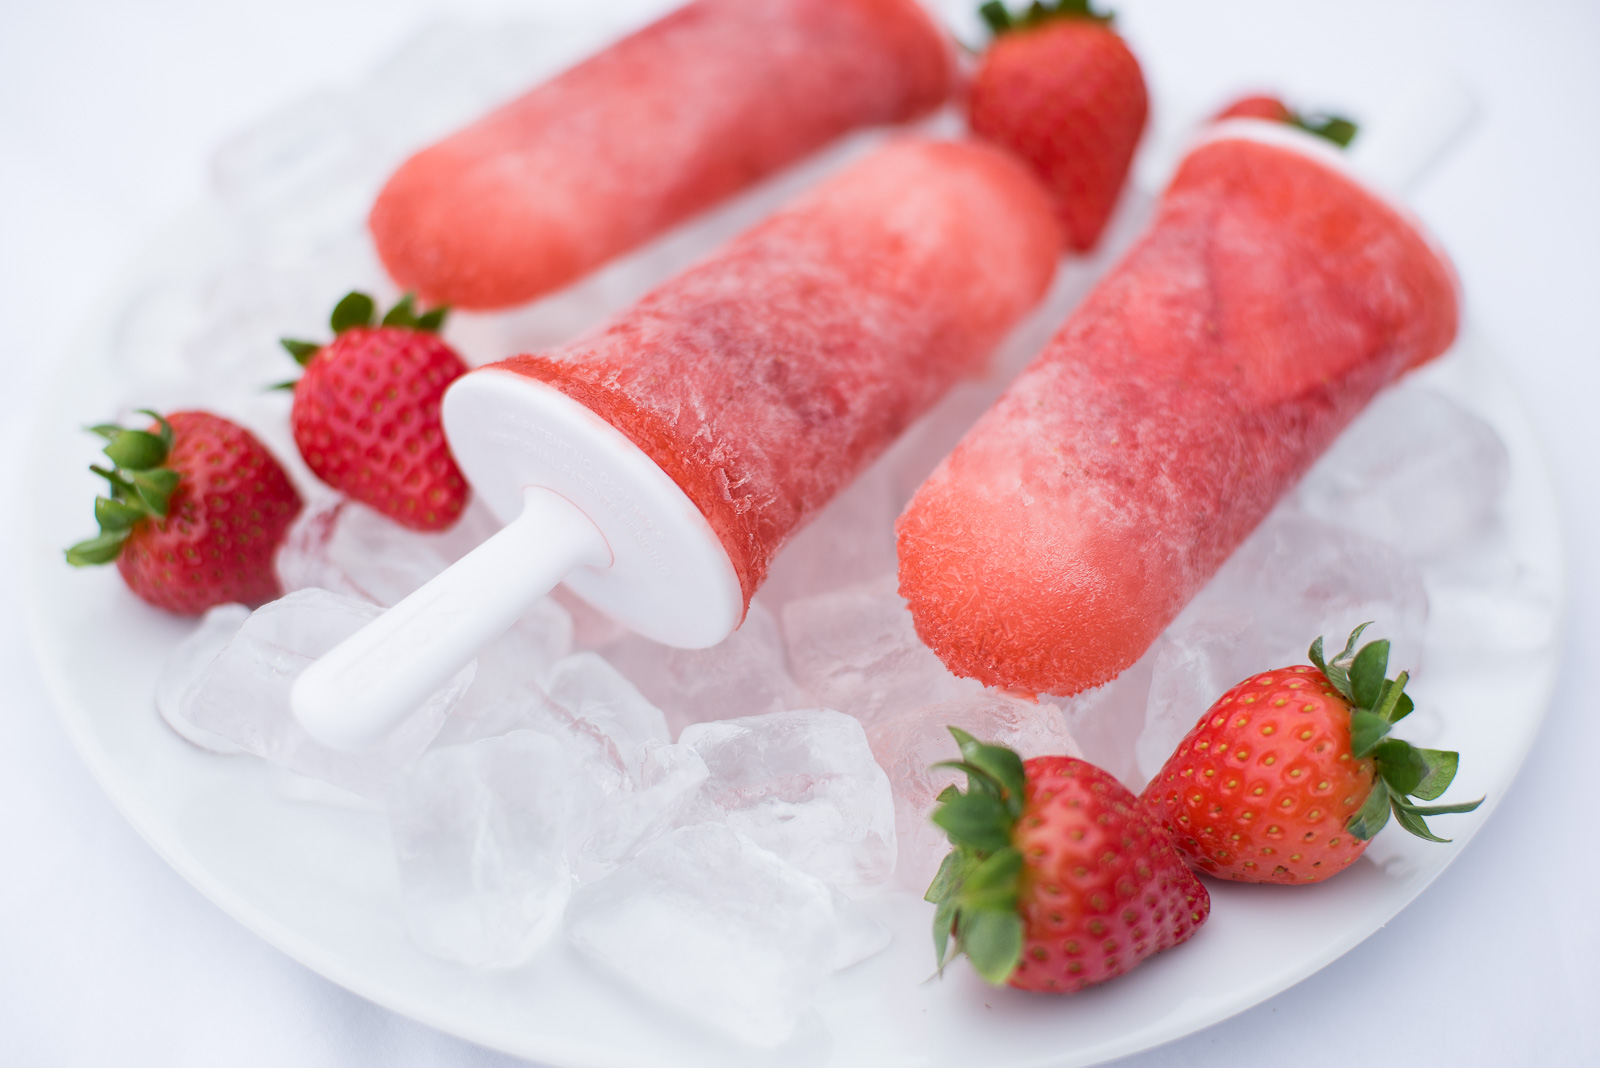 bloved-lifestyle-blog-summer-dessert-recipe-strawberry-champagne-ice-pops (3)